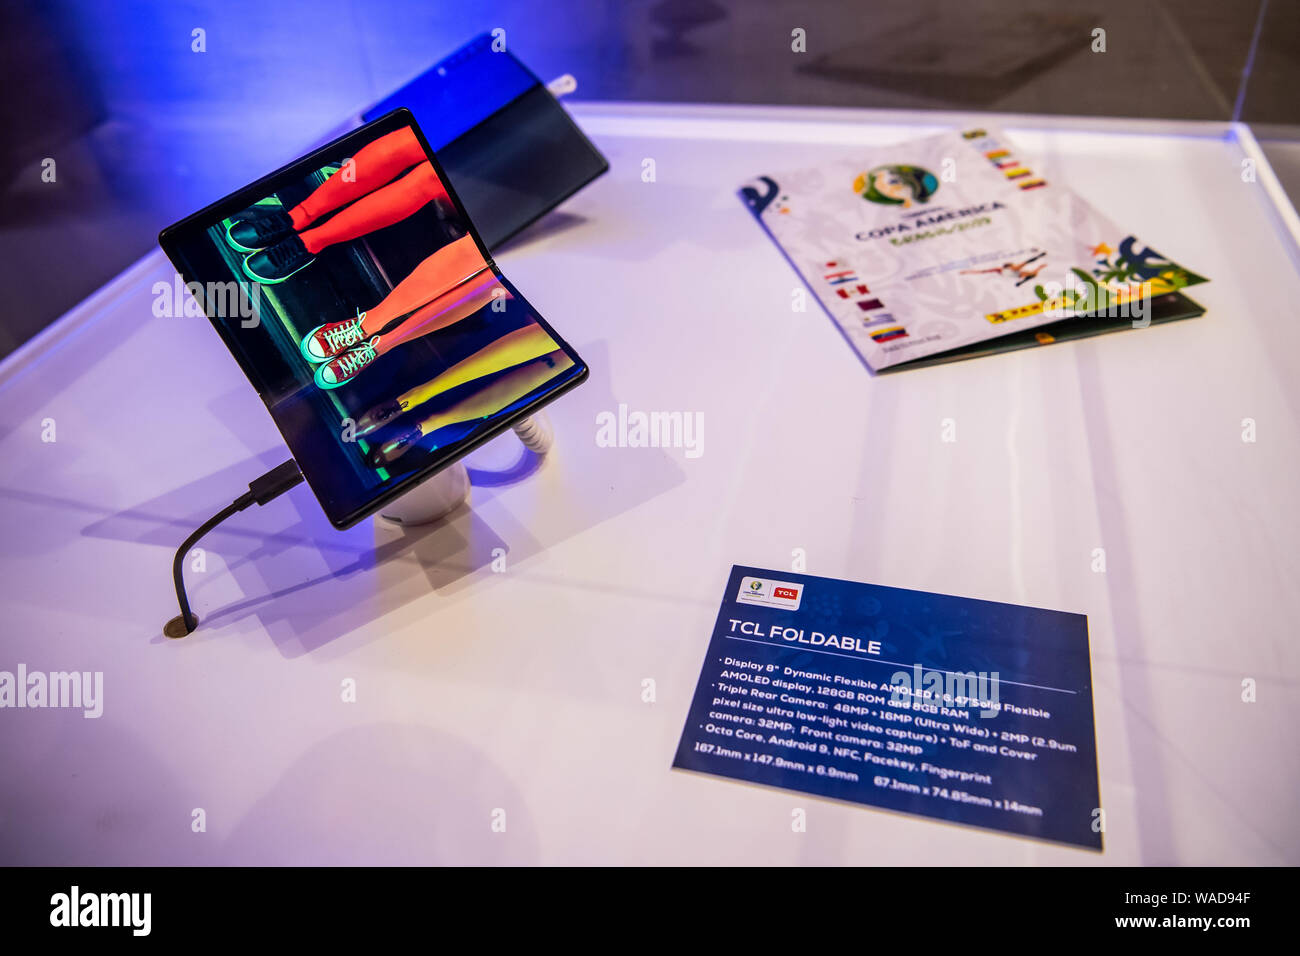 A TCL 5G Foldable smartphone is displayed during the TCL new